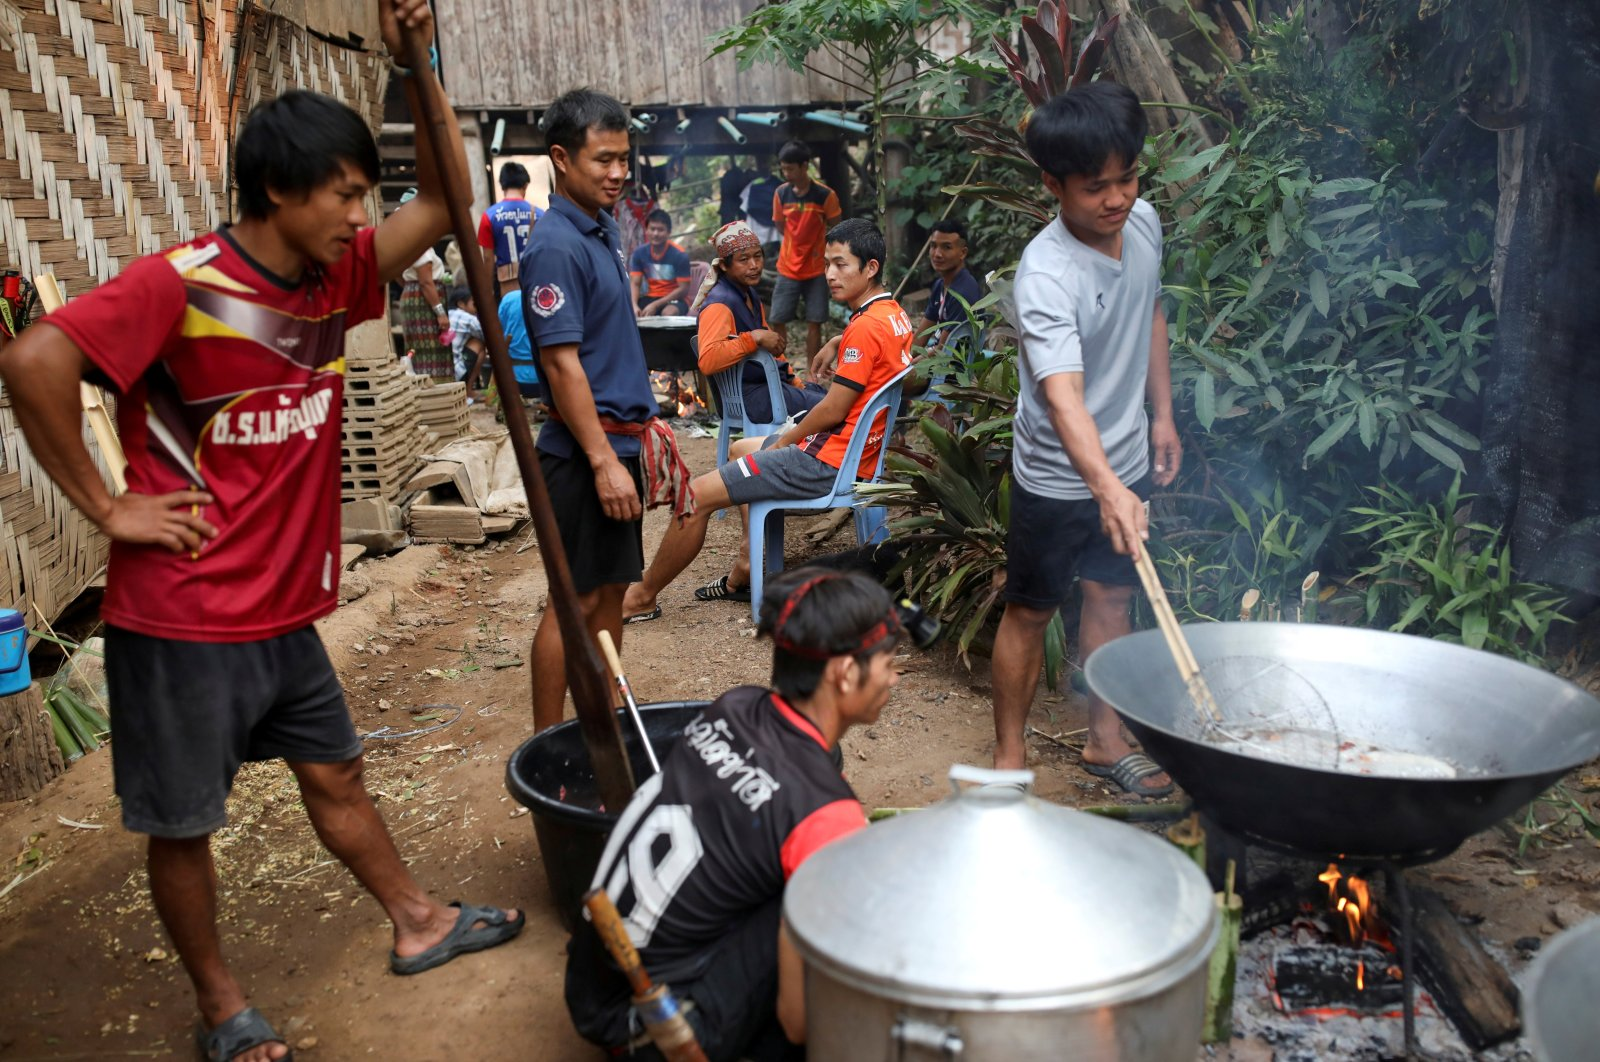 Men prepare food during a death anniversary in the Kayan village, where people who fled from Myanmar during the 1990s war between Myanmar's army and ethnic army groups, live, Mae Hong Son, Thailand, March 25, 2021. (Reuters Photo)